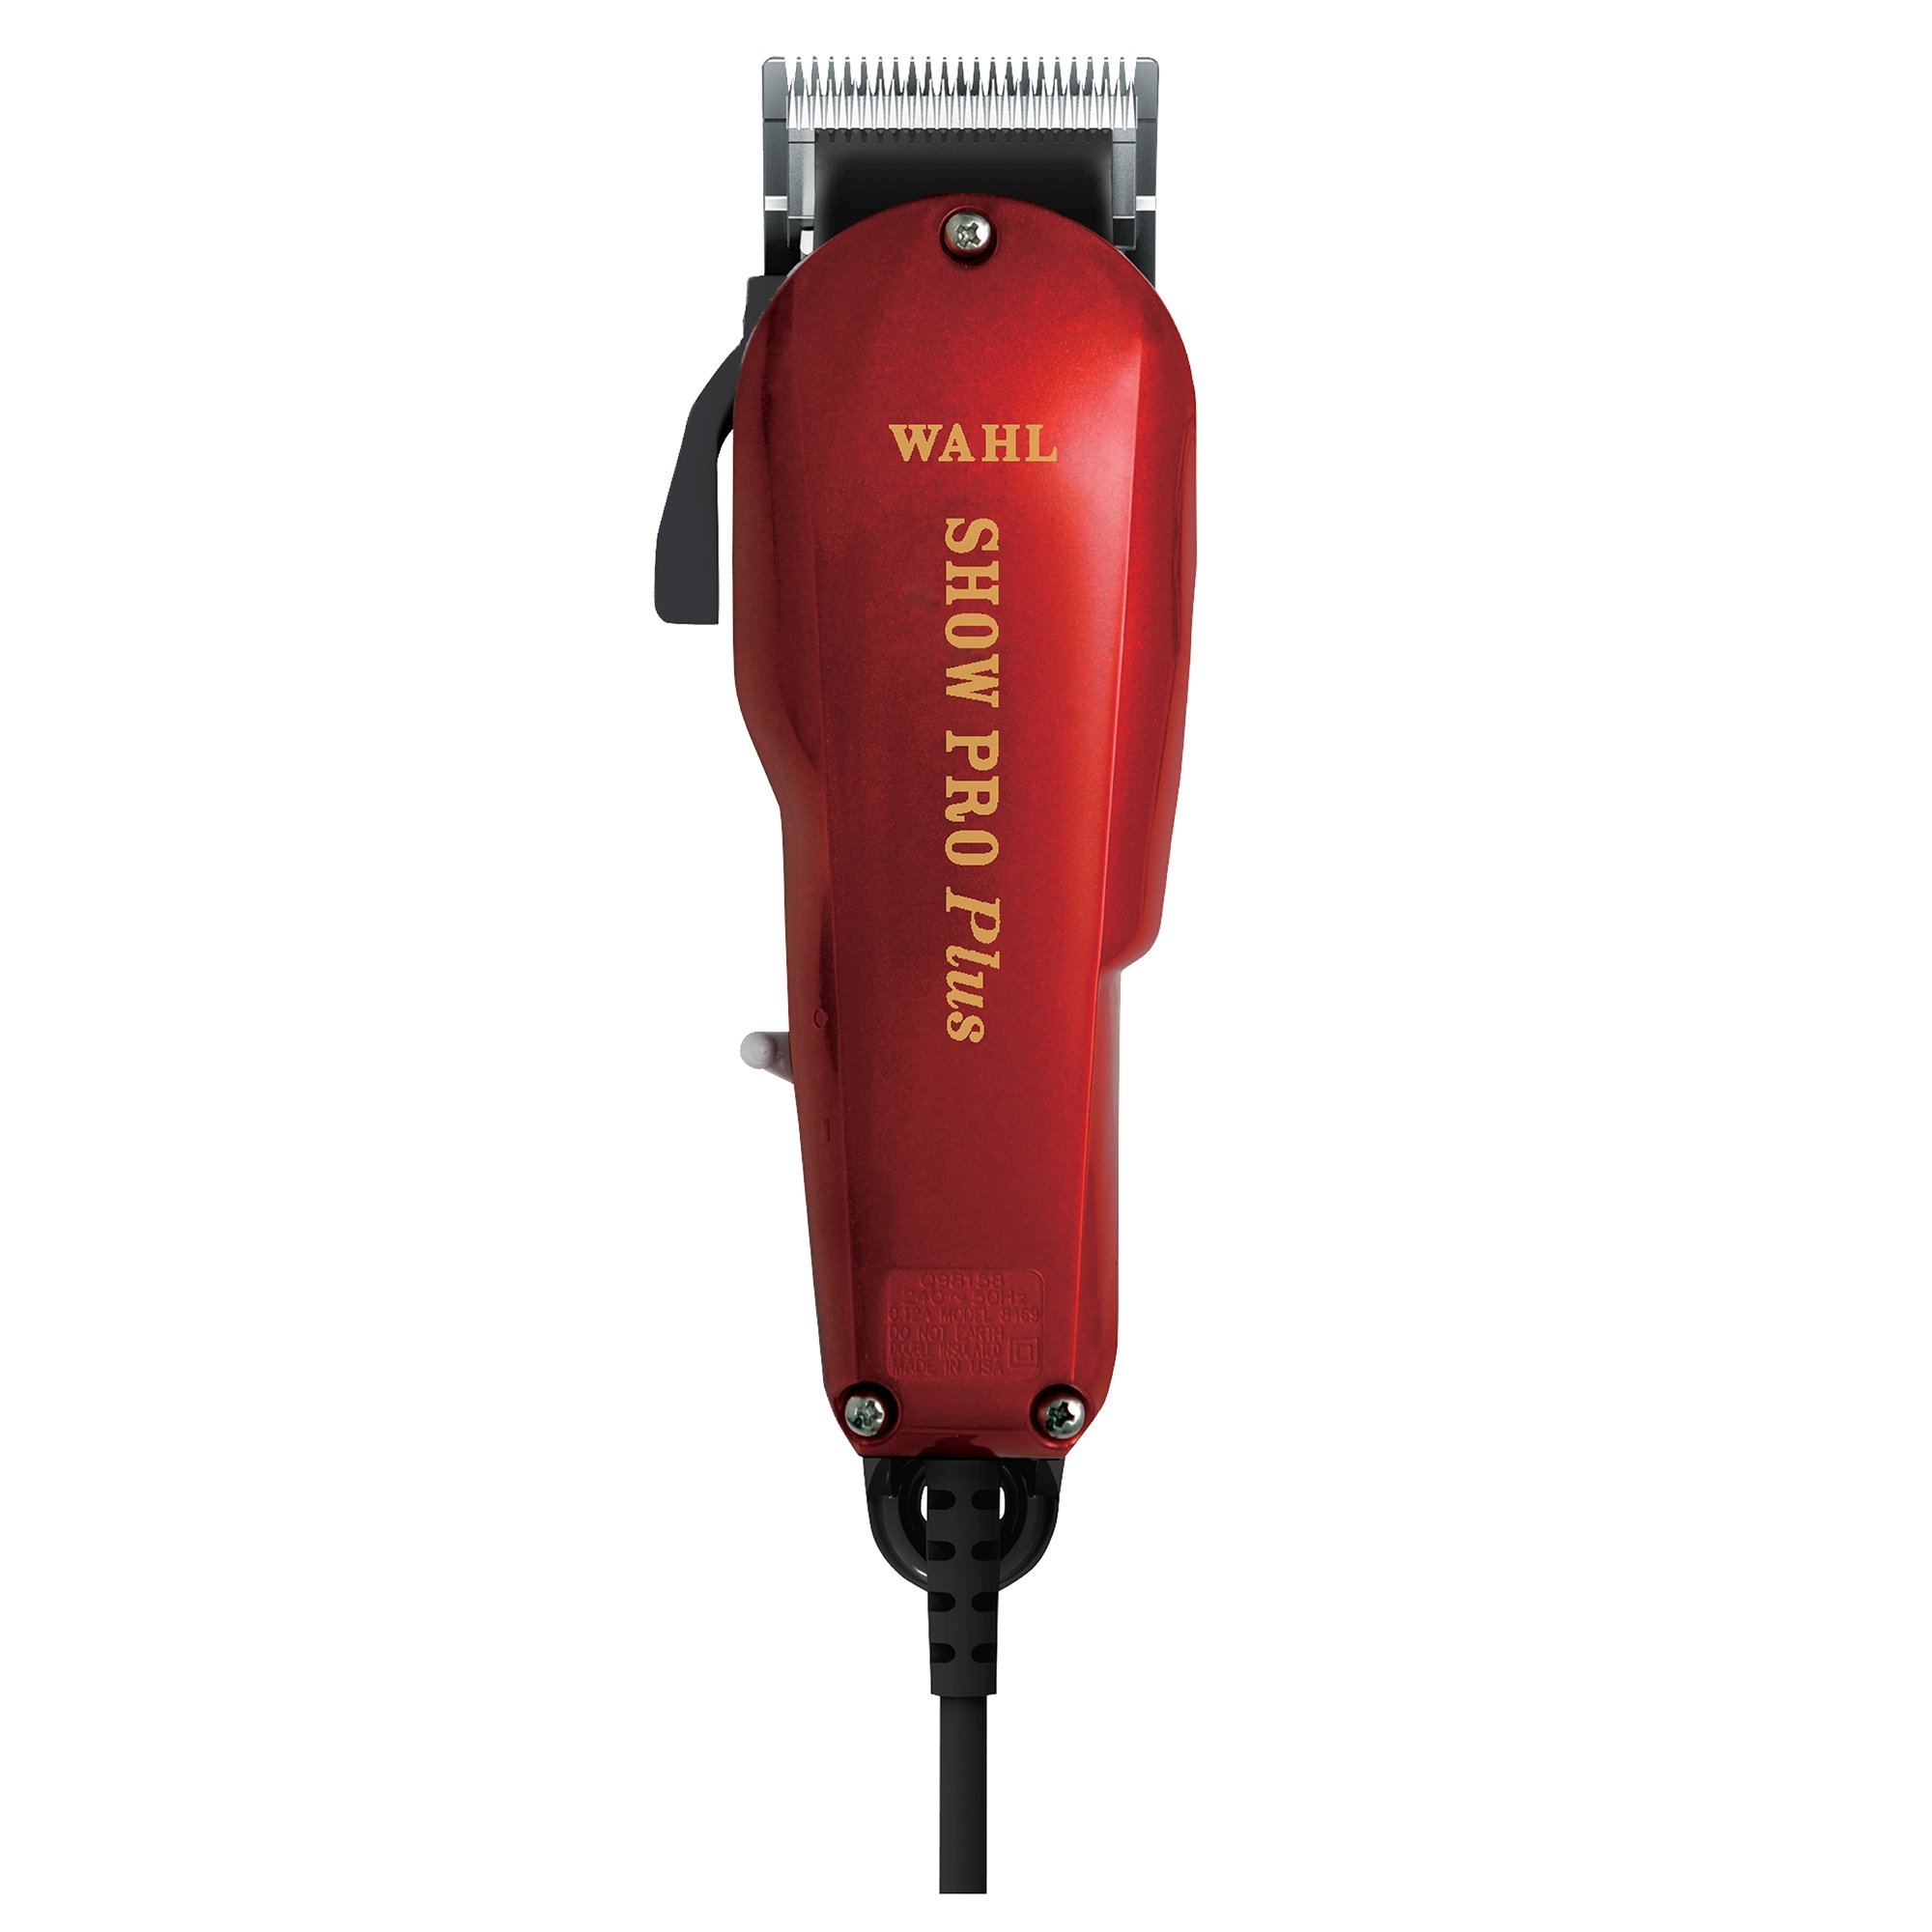 Wahl Professional Animal Show Pro Plus Equine Horse Clipper and Grooming Kit (#9482-700) by Wahl Professional Animal